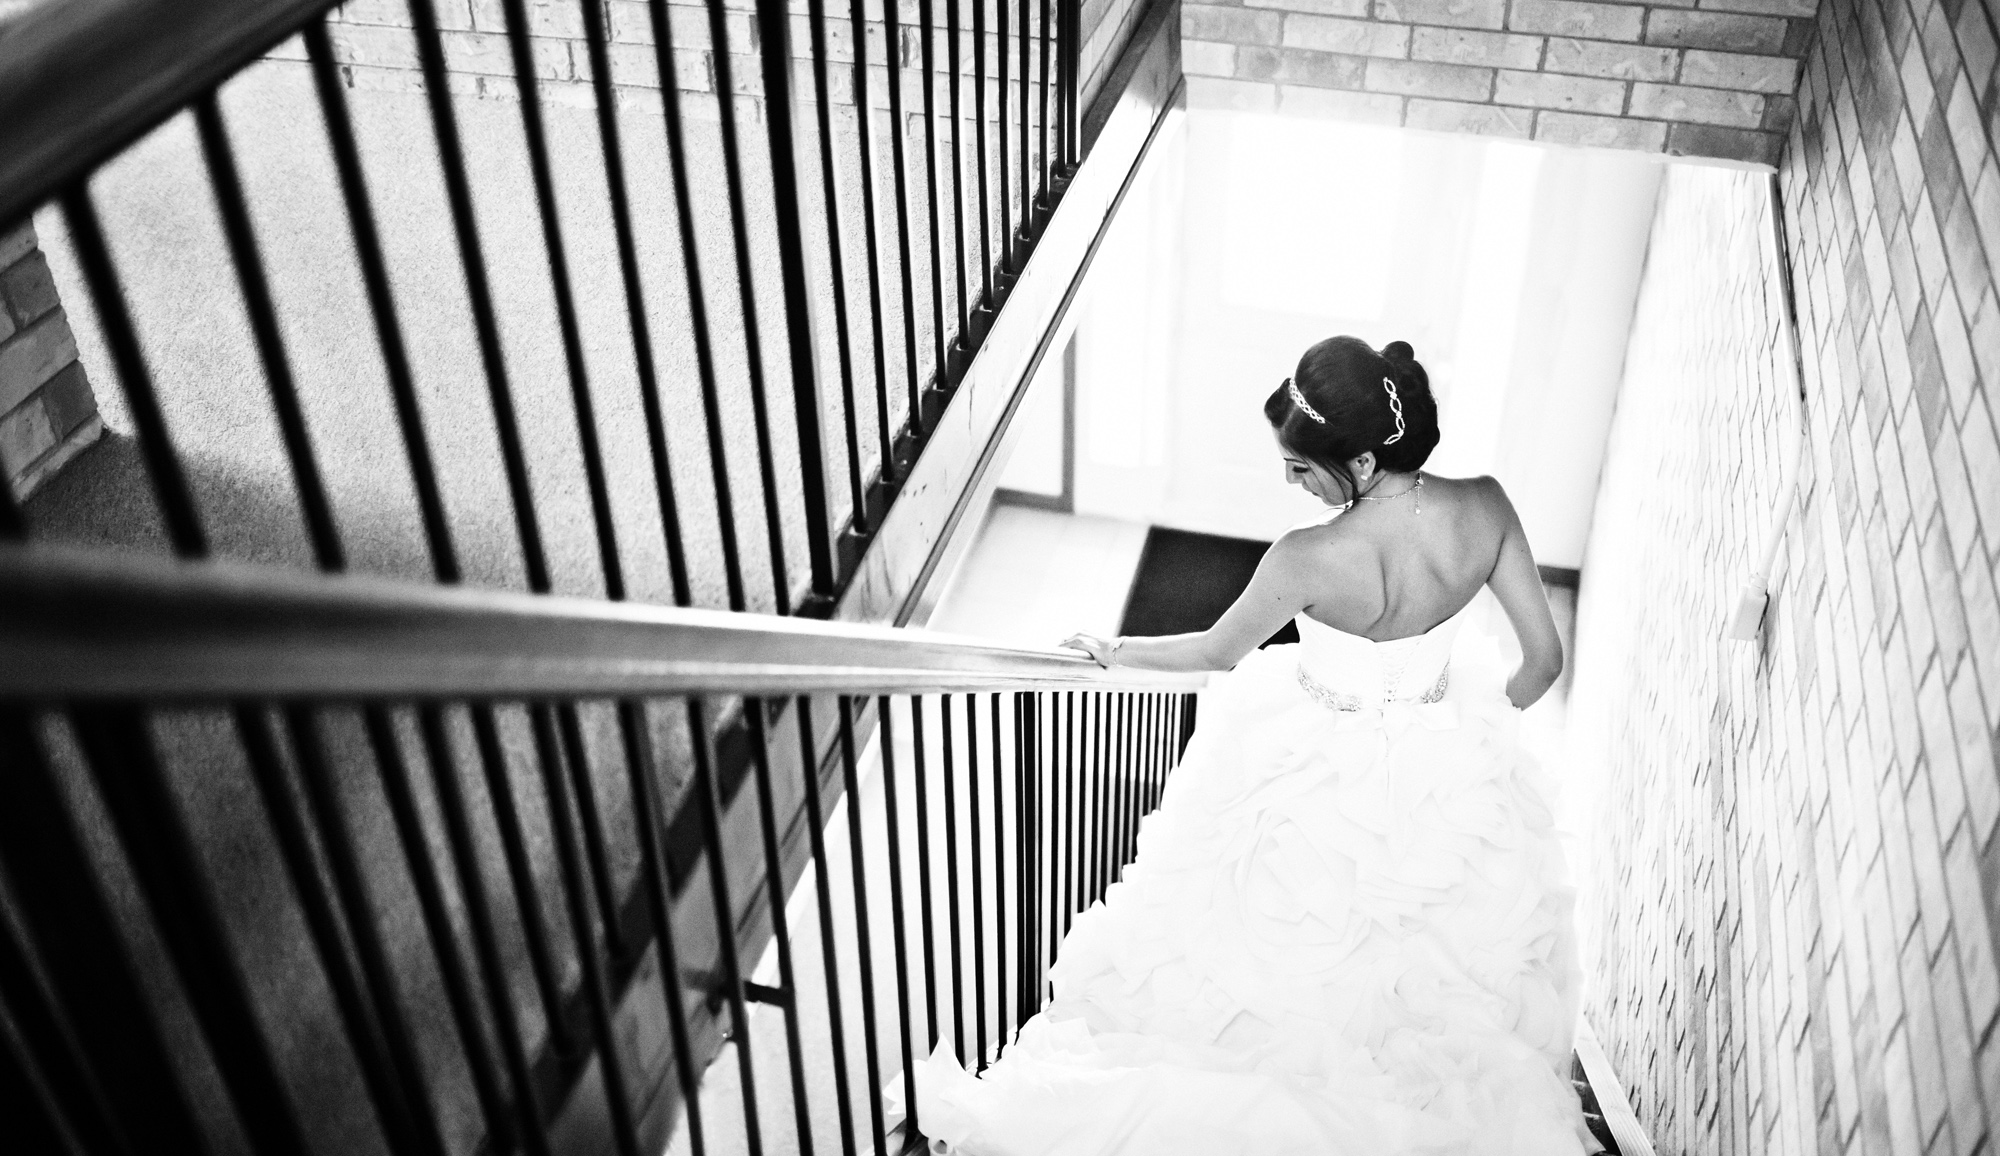 chateau_bu_sche_chicago_wedding_photographer_videographer02.jpg